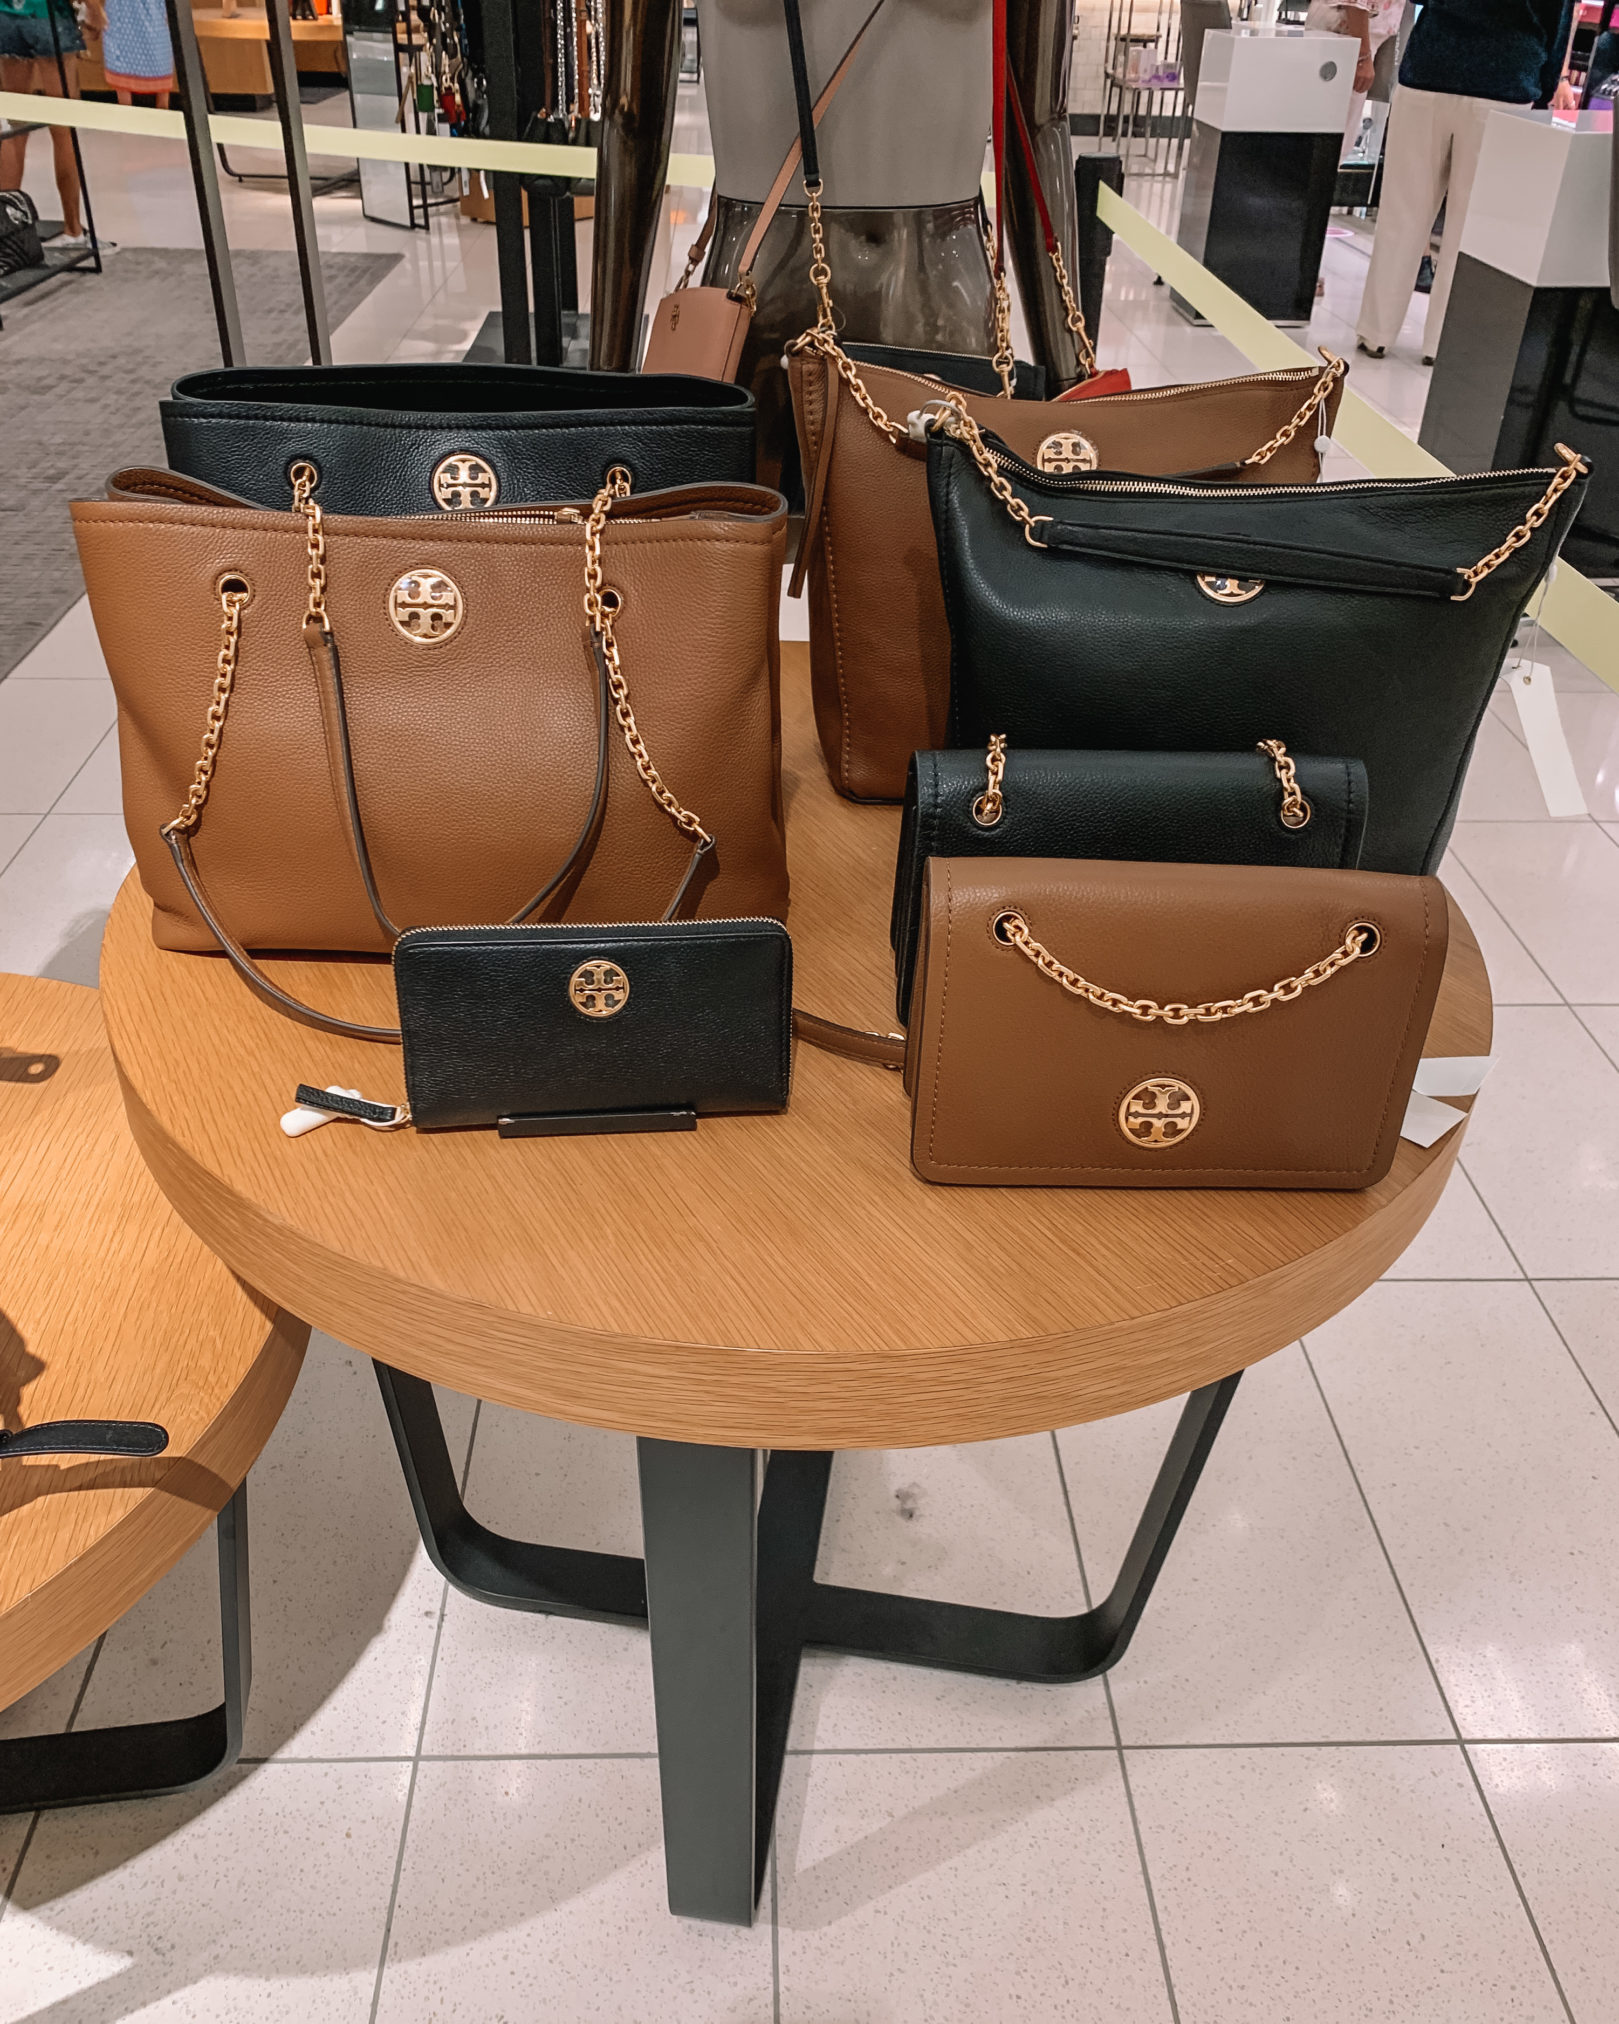 nsale 2020, Nordstrom anniversary sale try on, Tory Burch handbags and wallets